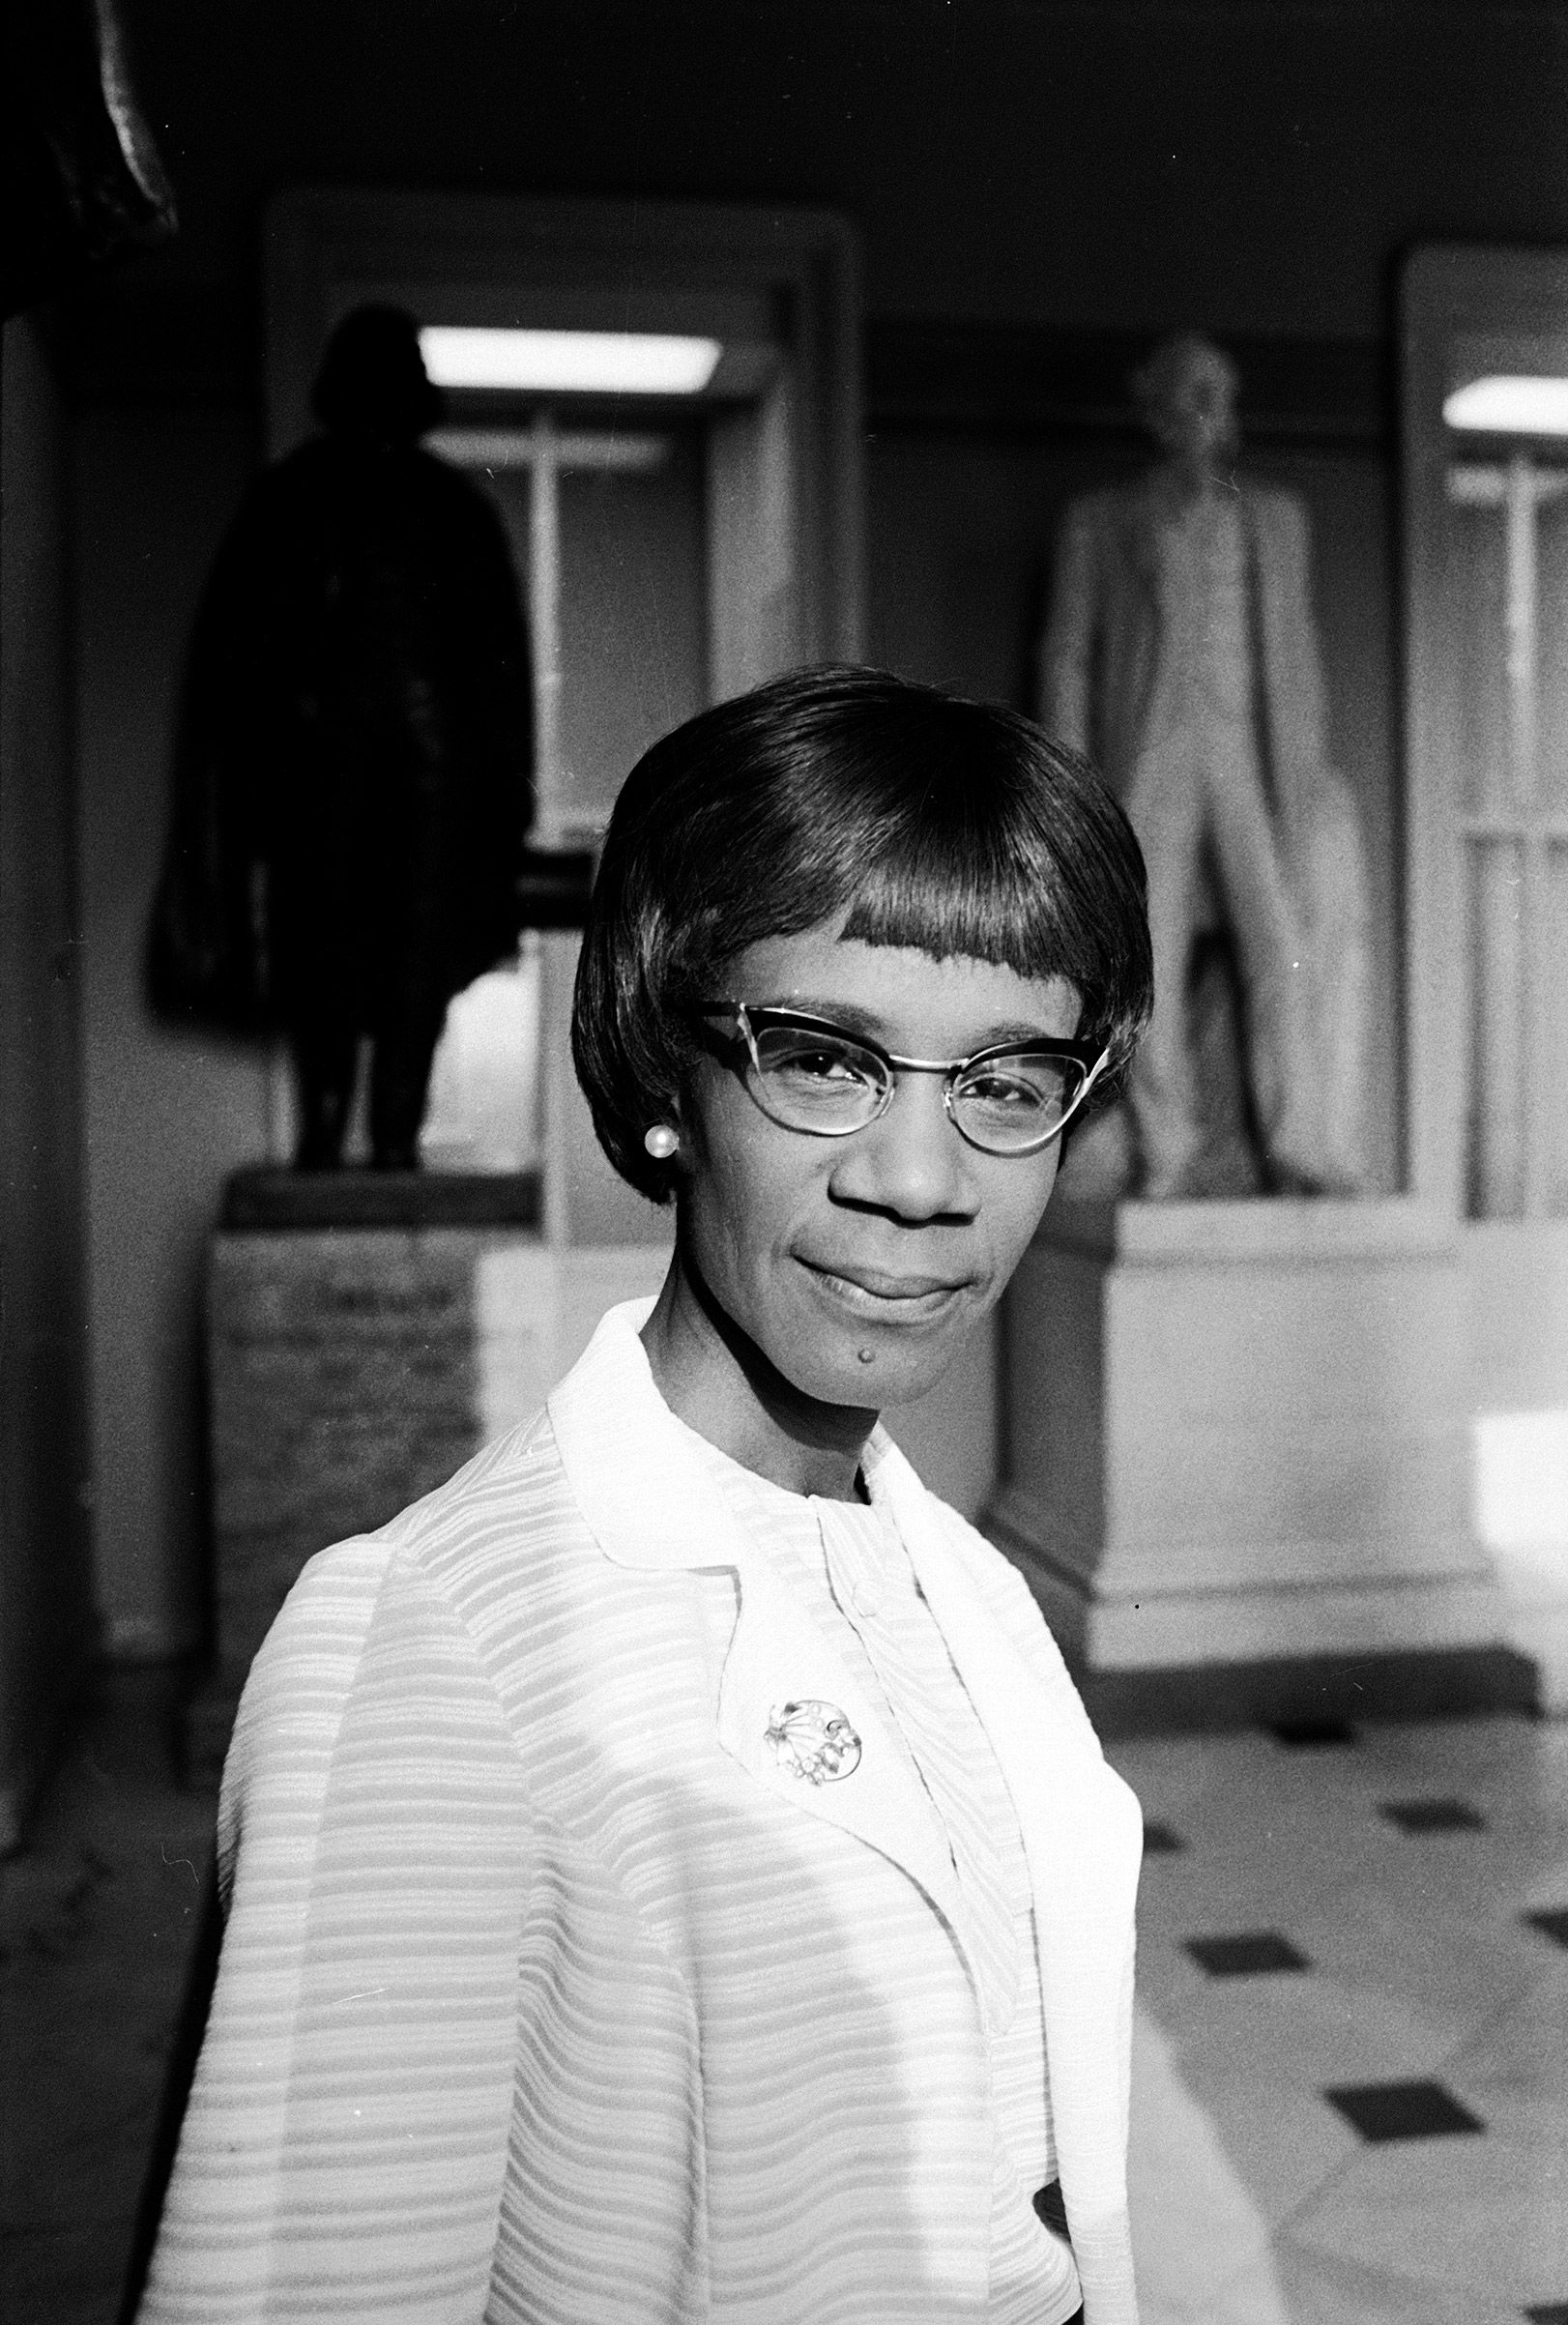 SHIRLEY CHISHOLM became the first African-American woman elected to Congress in 1968 (representing Brooklyn, N.Y.).